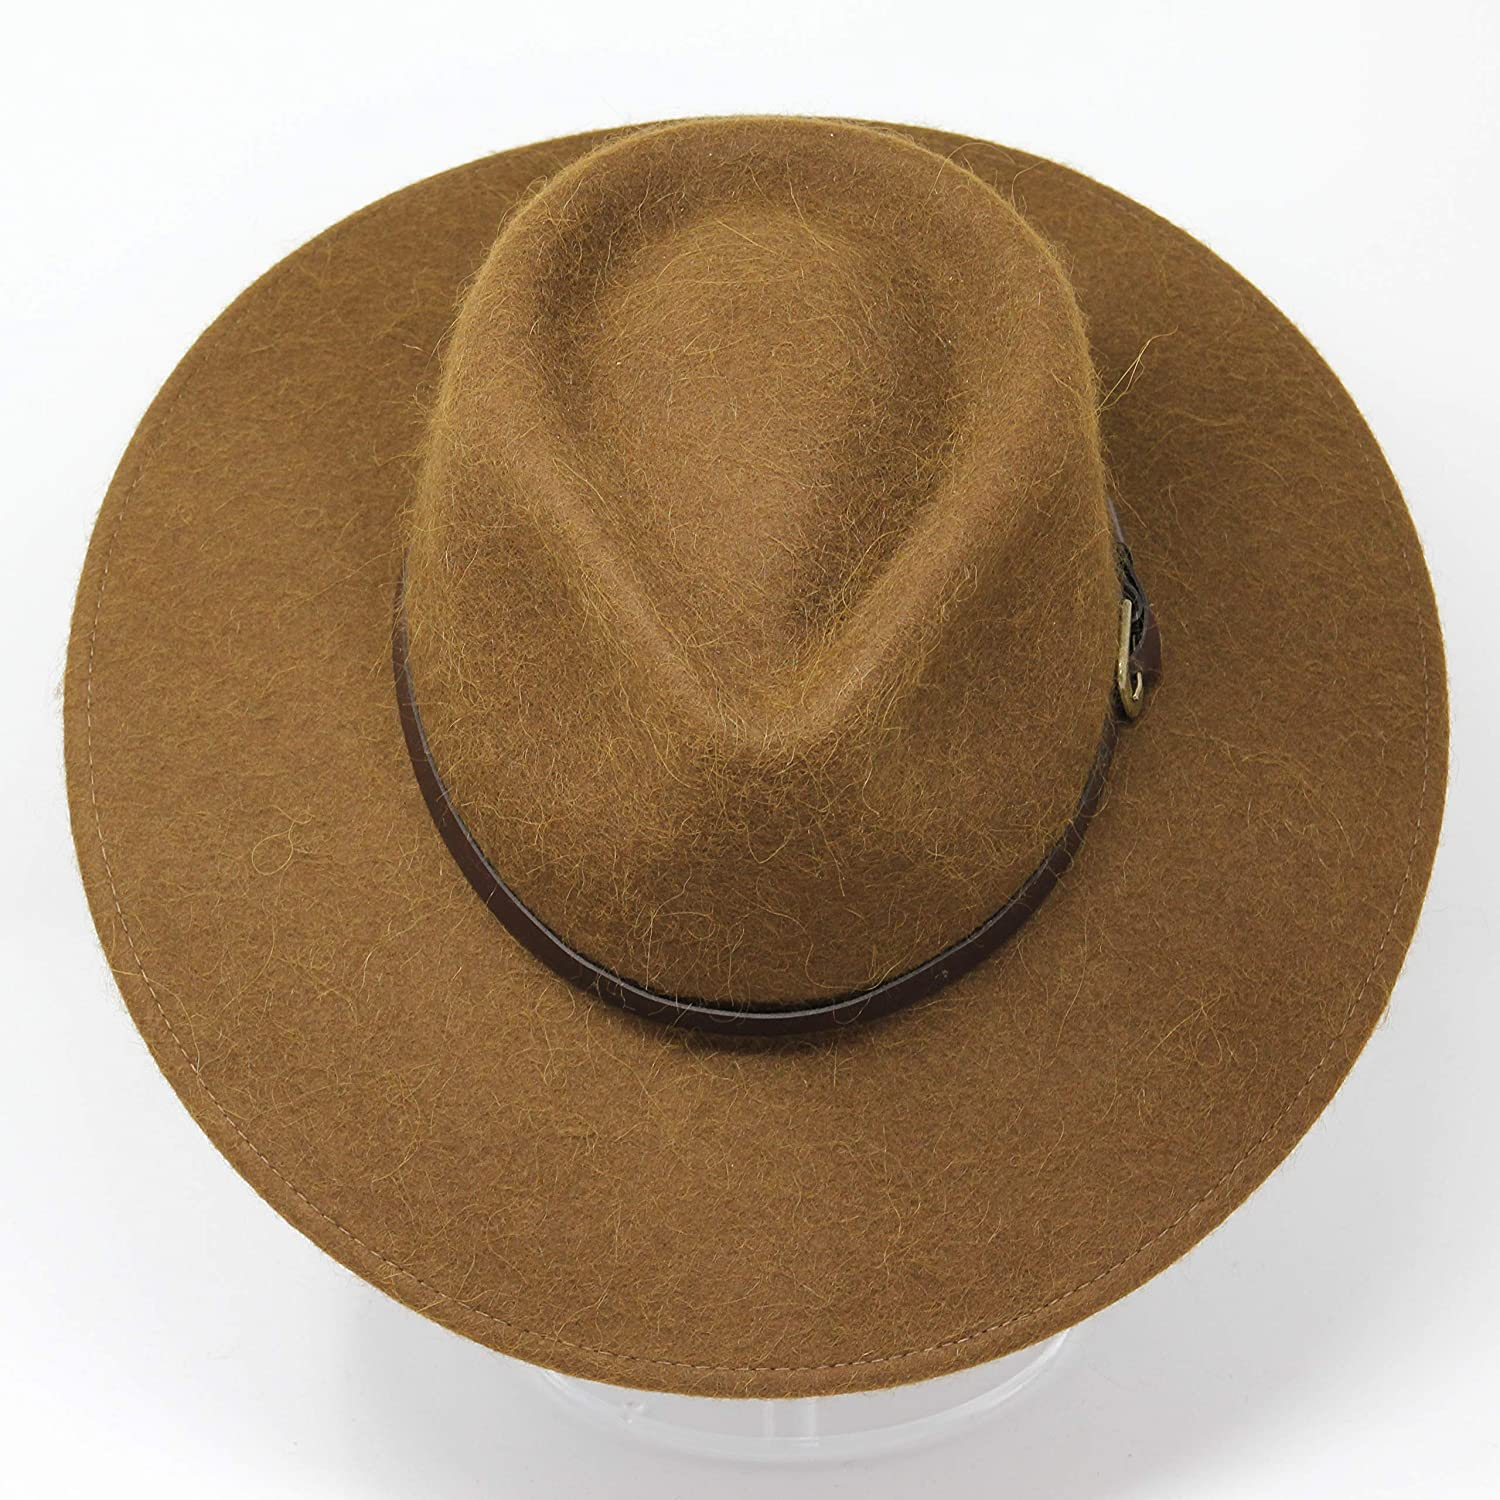 Premium Alpaca Wool Felt Water Resistant Unisex Teardrop Fedora Hat Alpaca Doyle Crushable for Travel